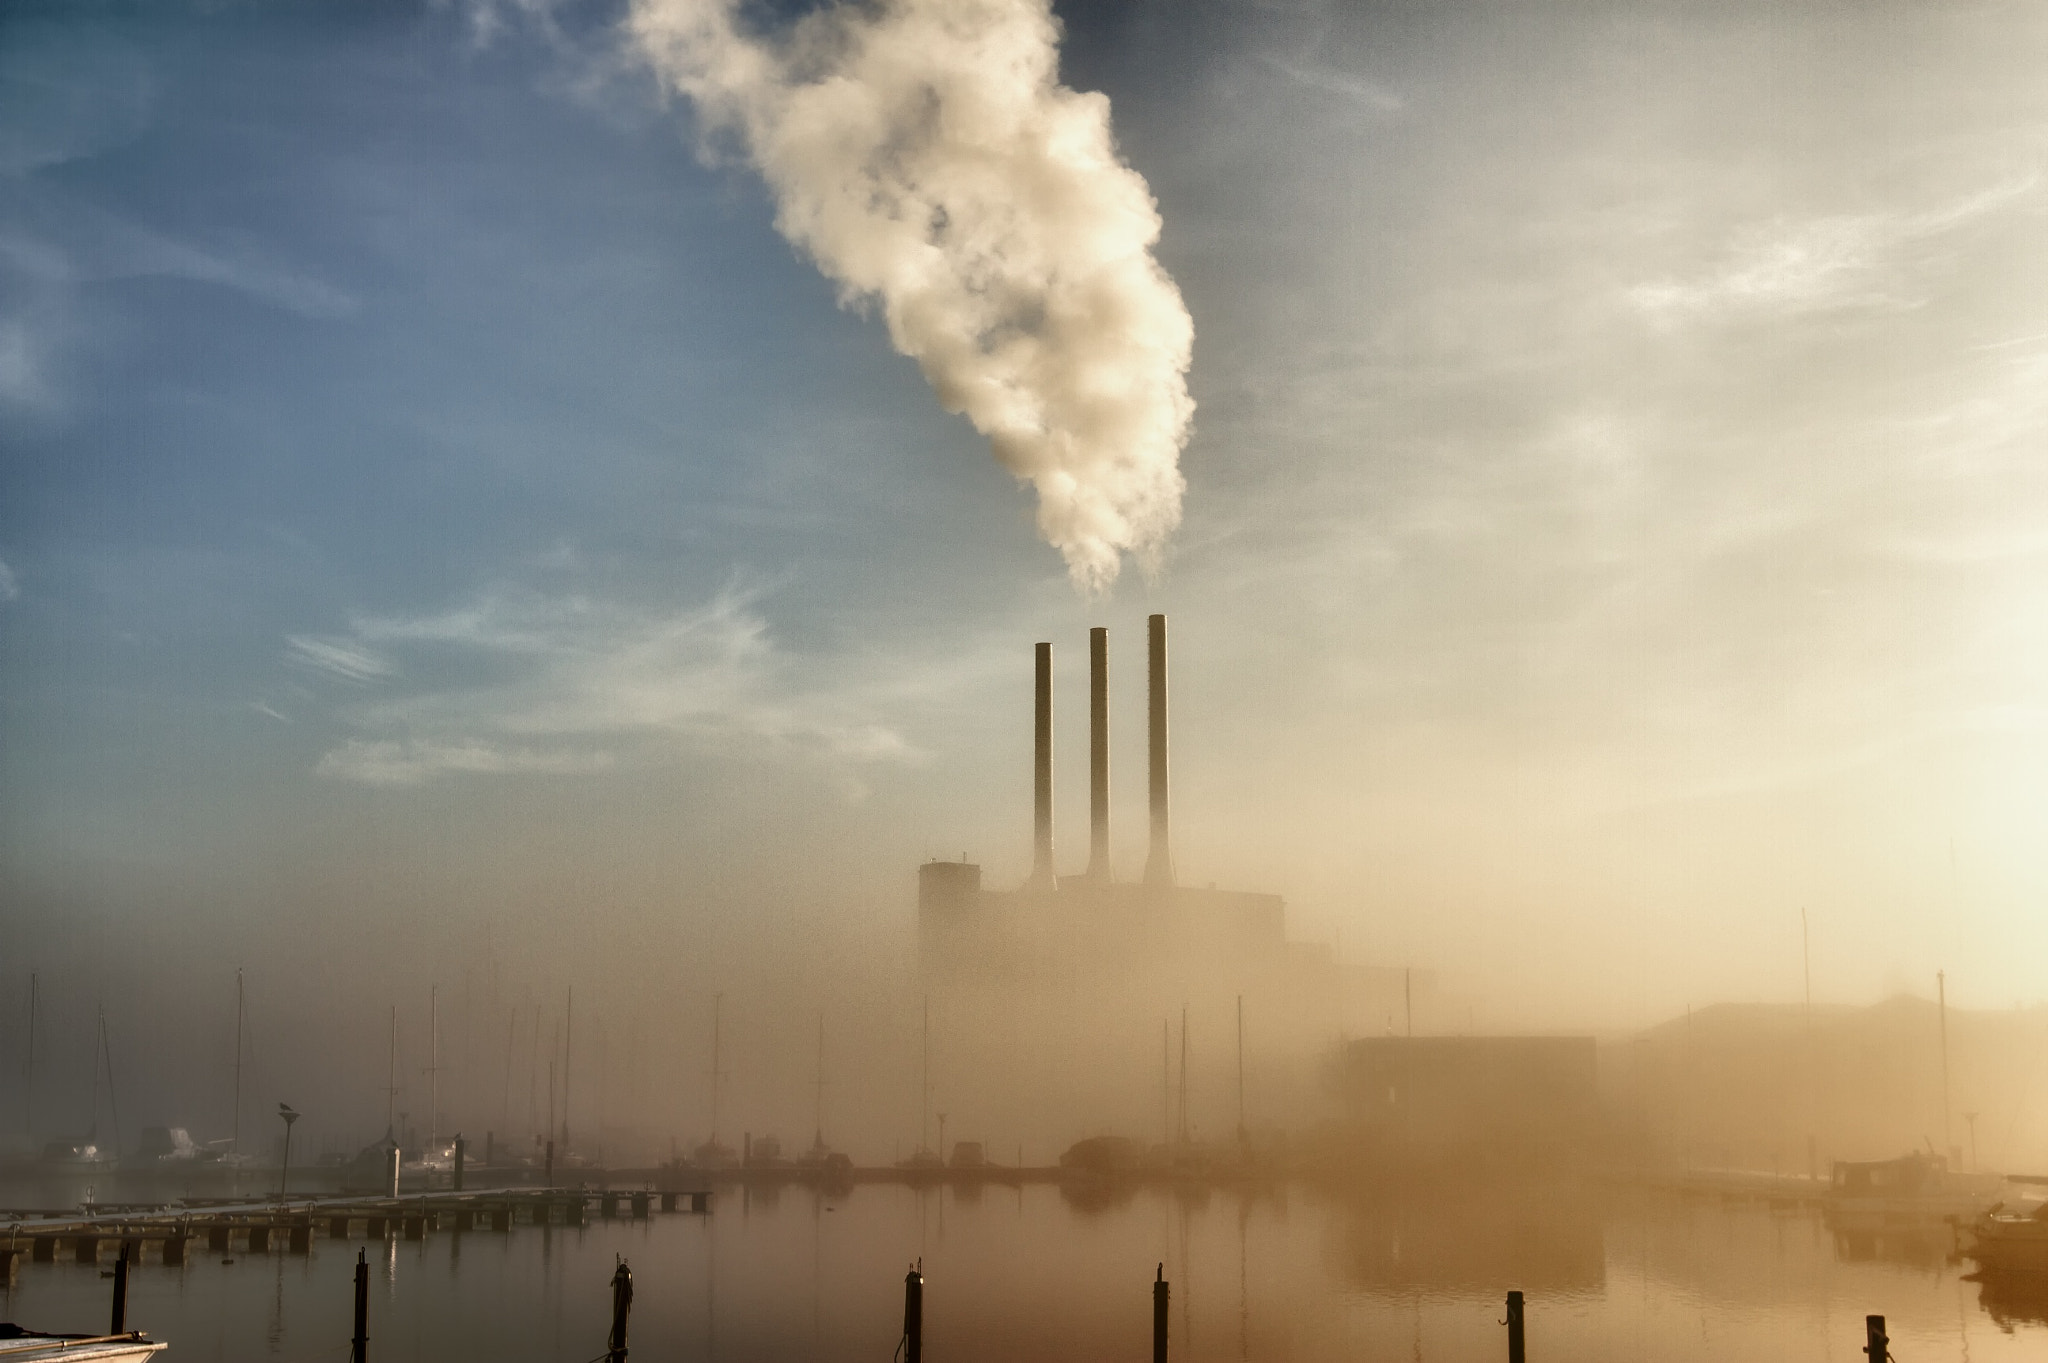 Photograph Mist over the energyplant by Mikael Klint on 500px